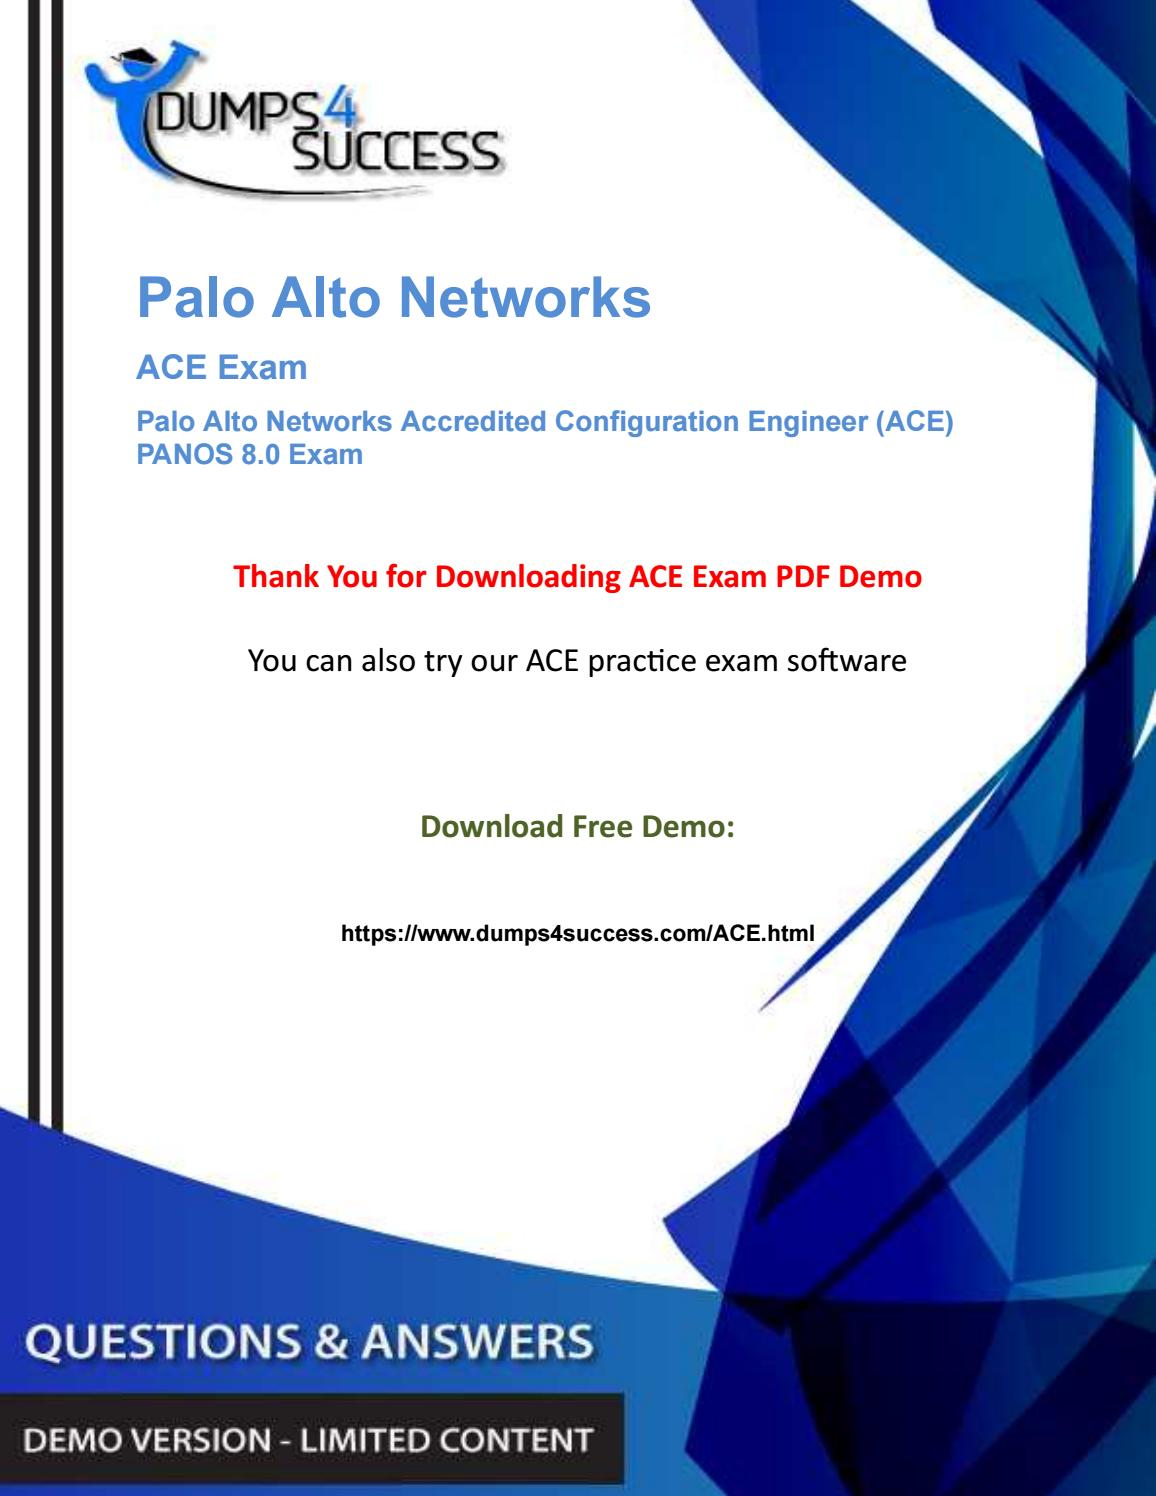 Paloalto Networks ACE Accredited Configuration Engineer Exam Study Tips And  Information by jj7355971mark - issuu